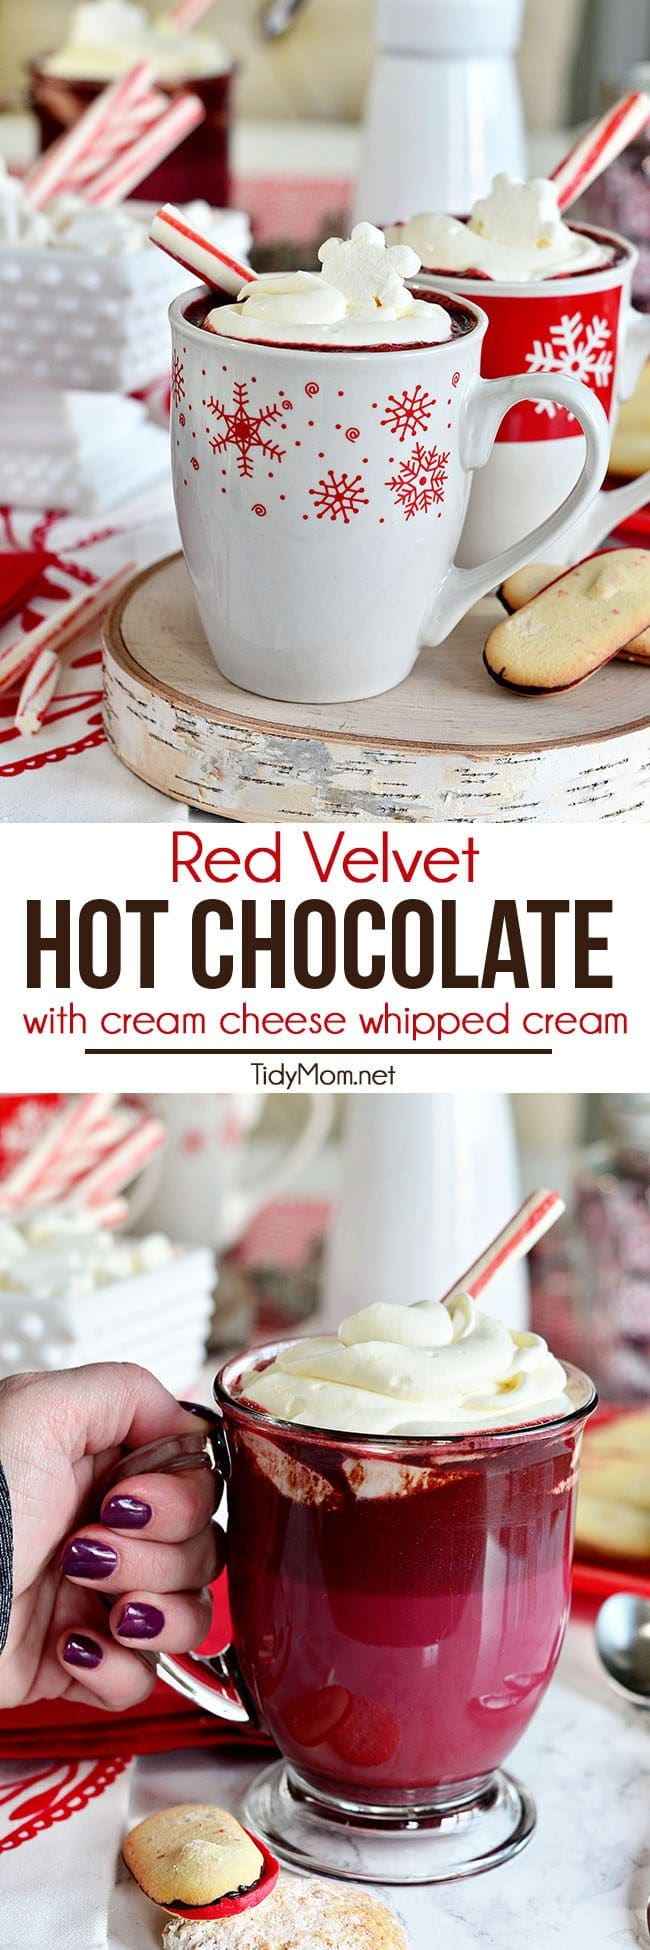 Red Velvet Hot Chocolate with Cream Cheese Whipped Cream photo collage